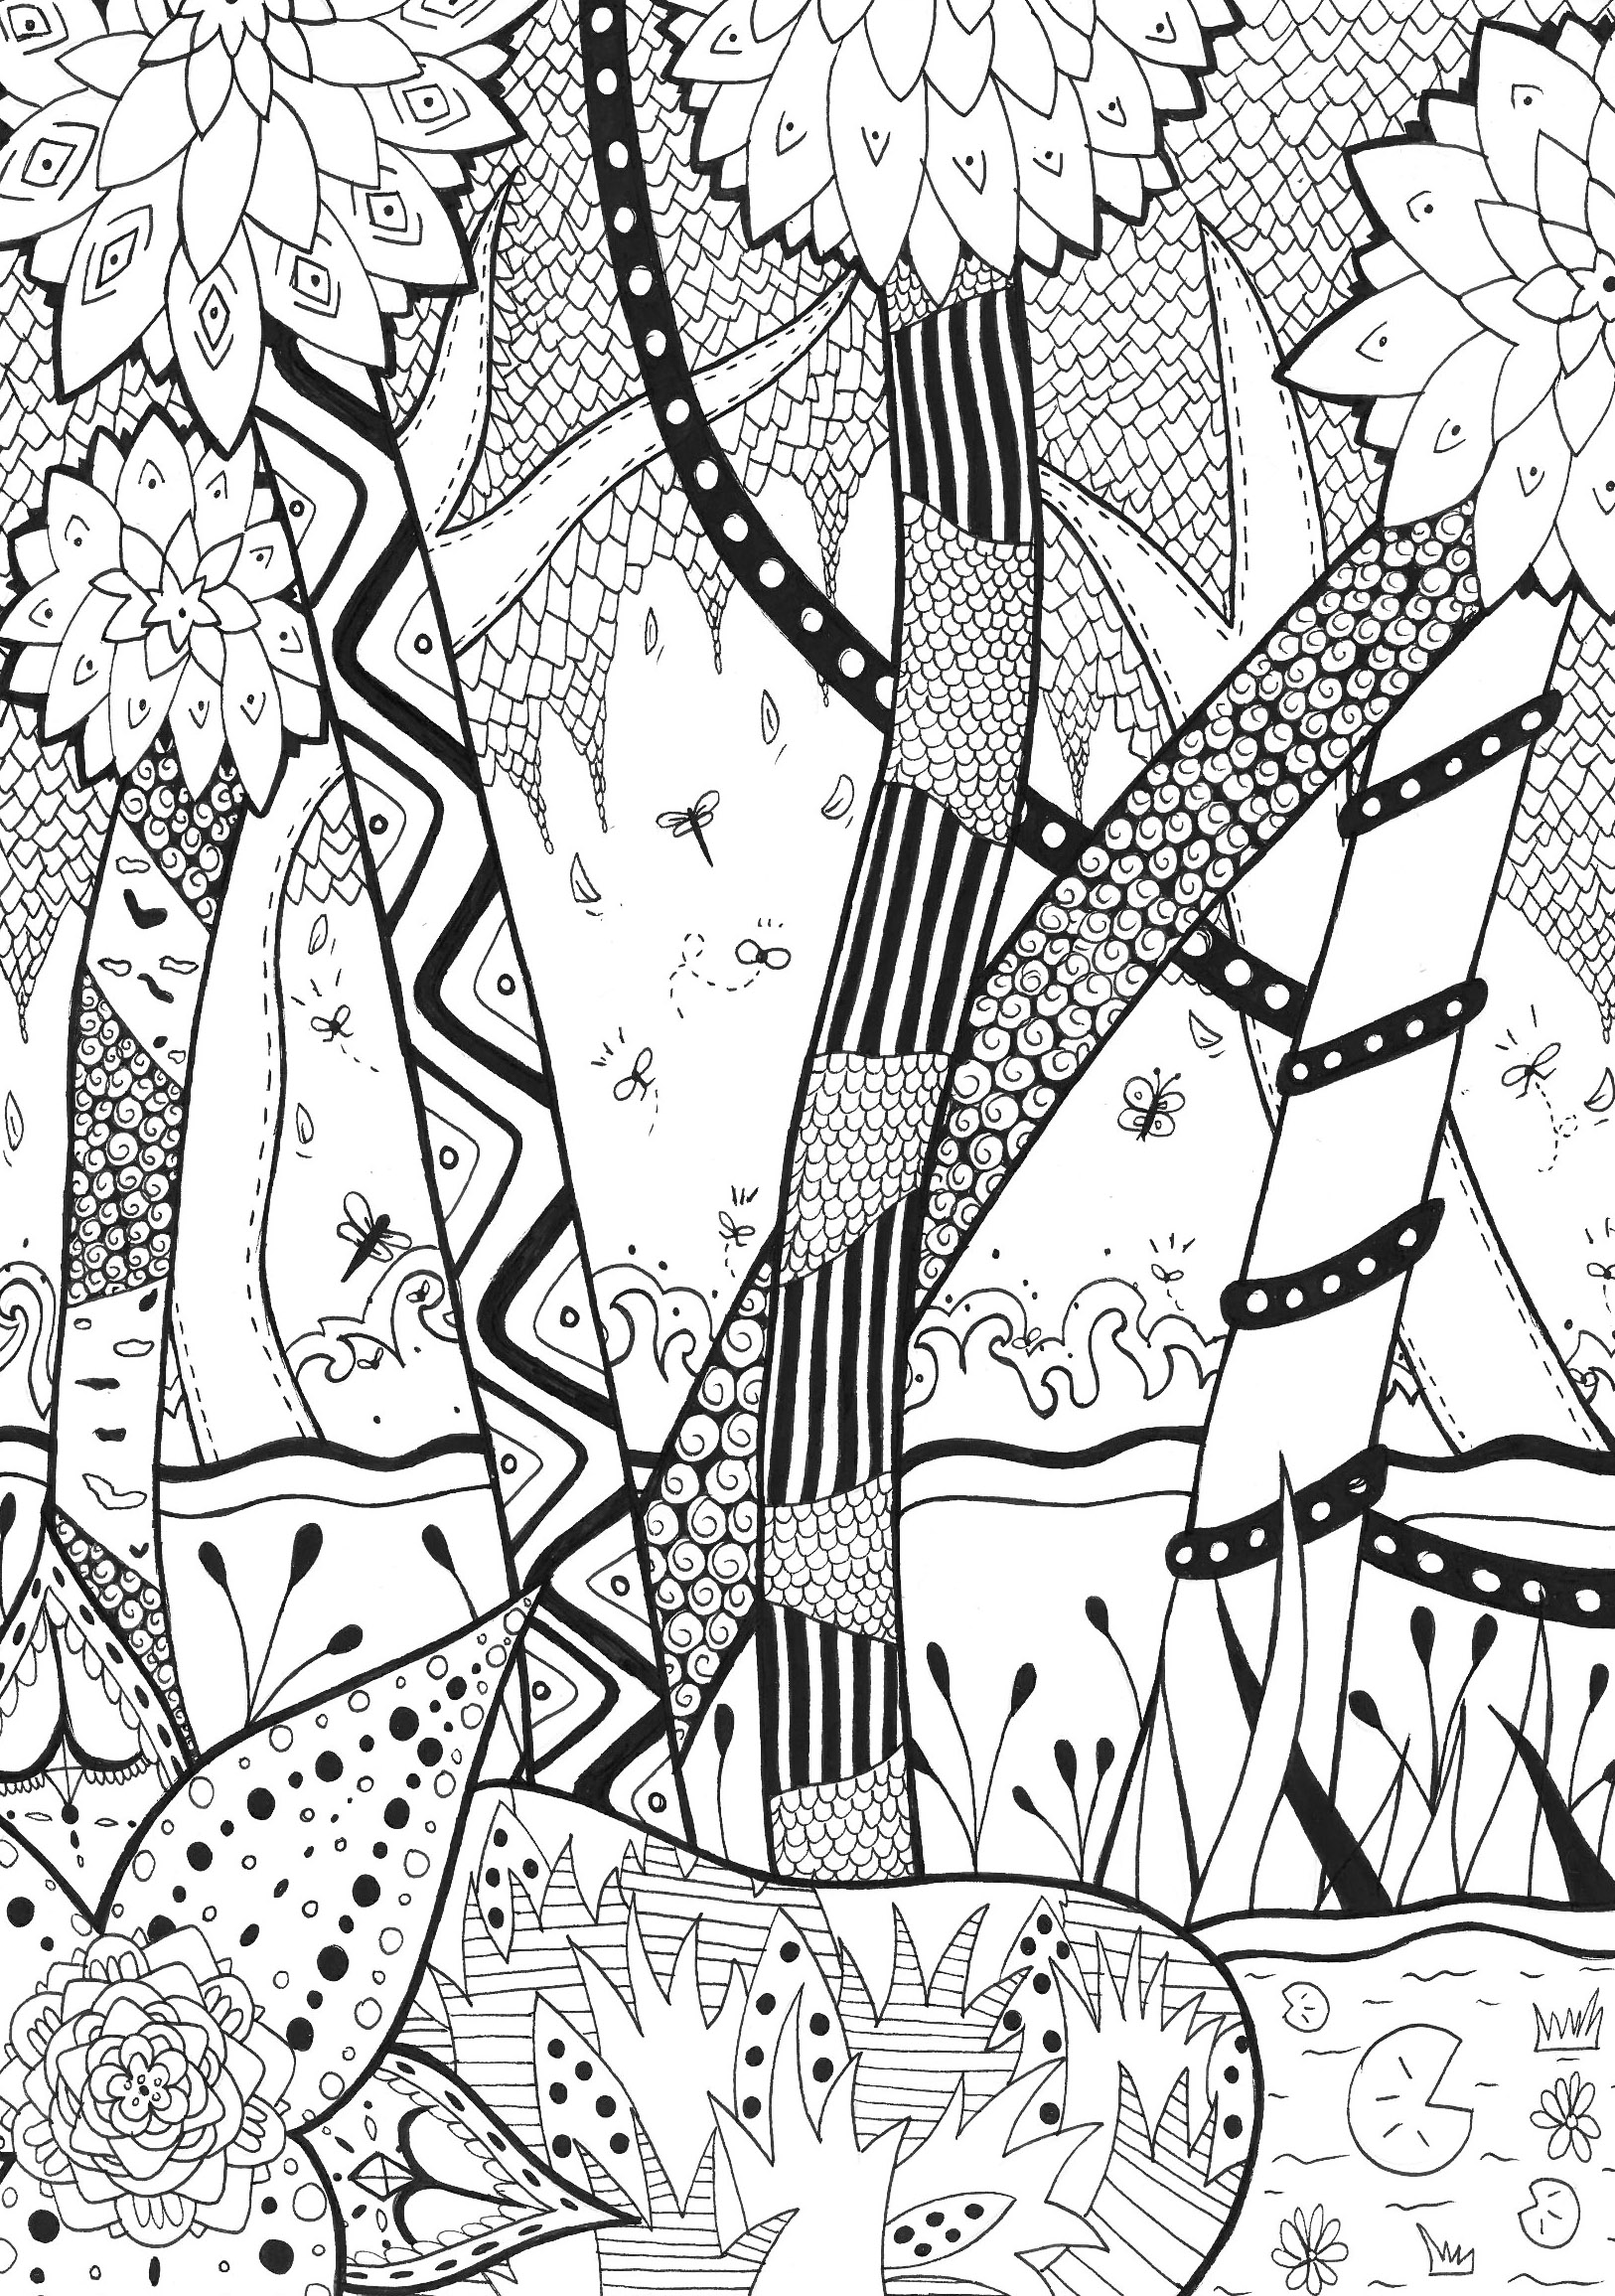 coloring pages forest sketch of forest where dwarfs live coloring page forest pages coloring